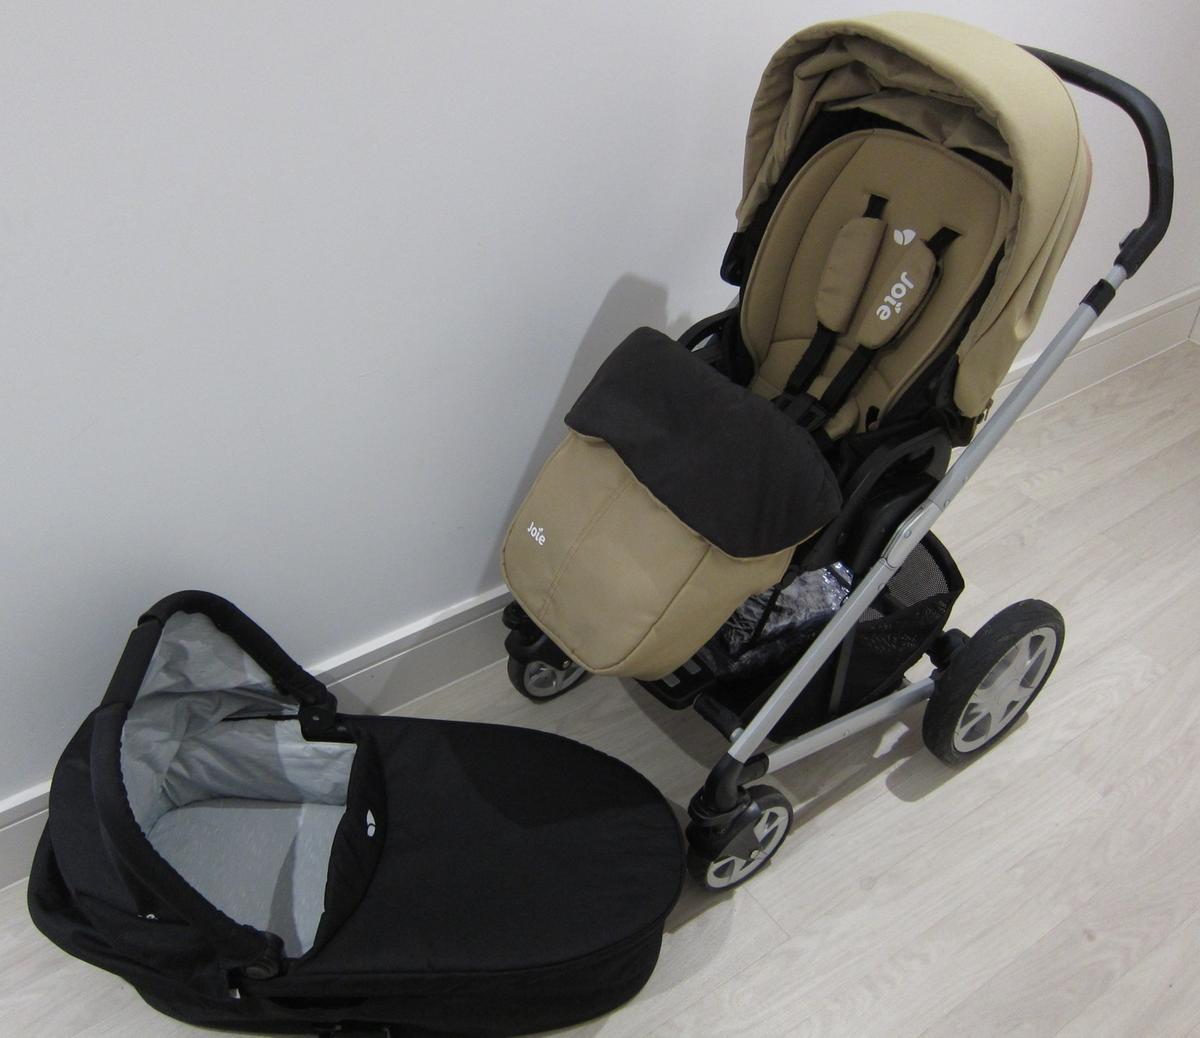 Travel System Joie Chrome Joie Chrome Plus Travel System In E4 London For 149 00 For